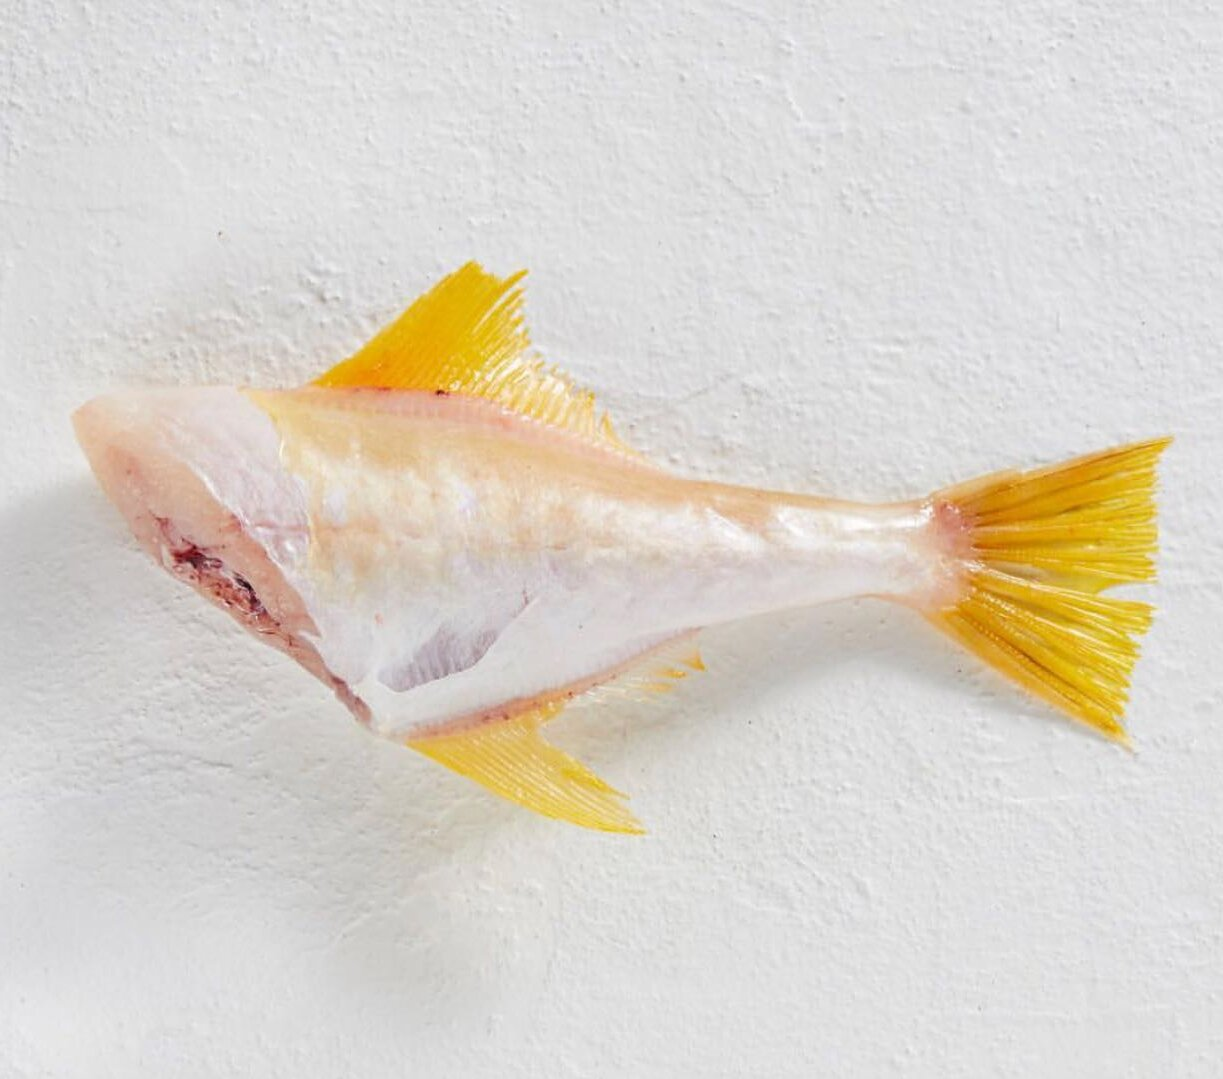 Wild Australian yellow fin skinned fish